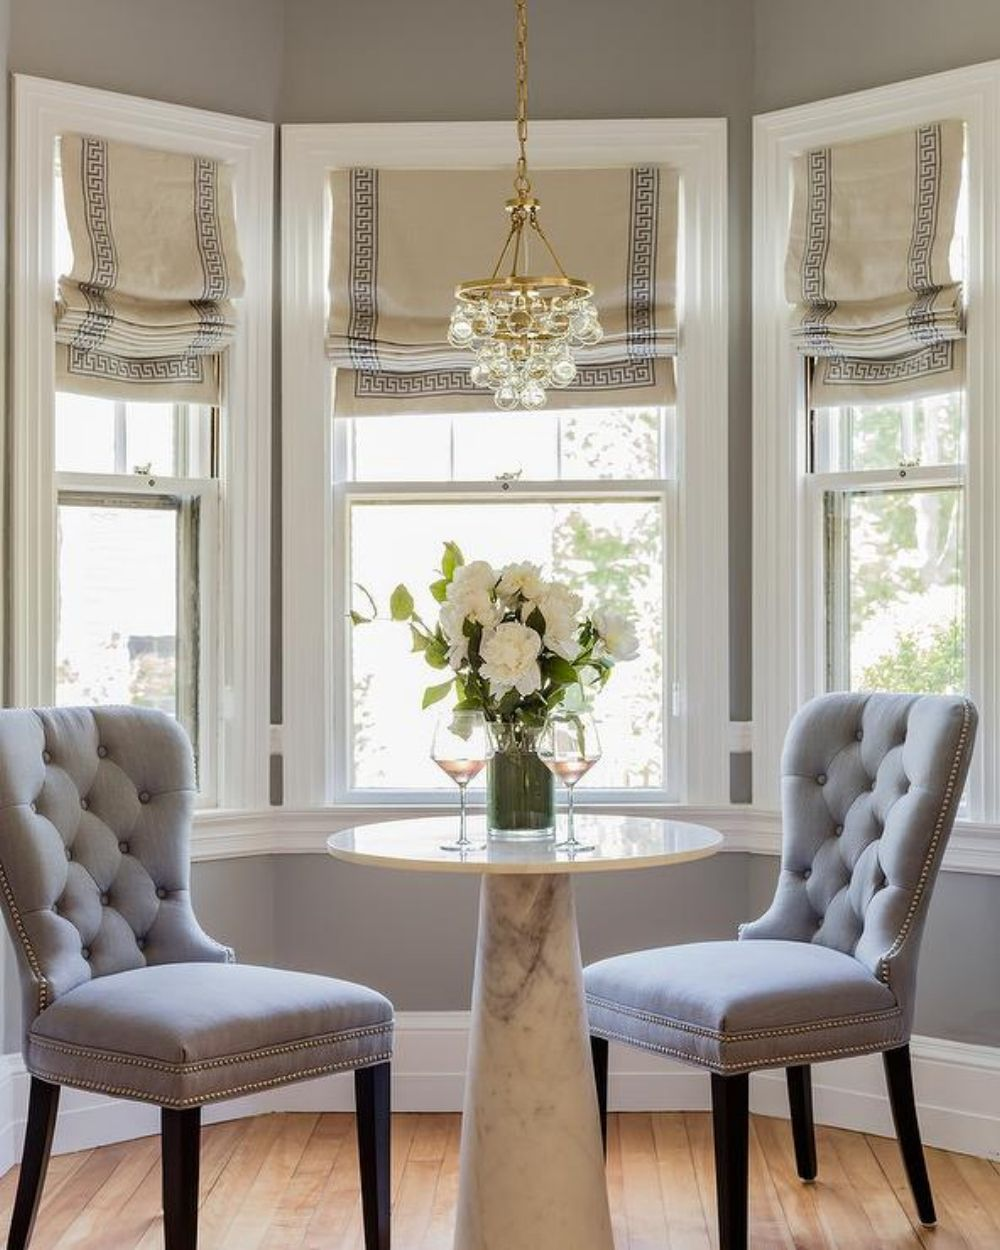 10 More Adorable Dining Nooks Cobalt Gold Dining Room Windows Dining Room Small Bay Window Living Room